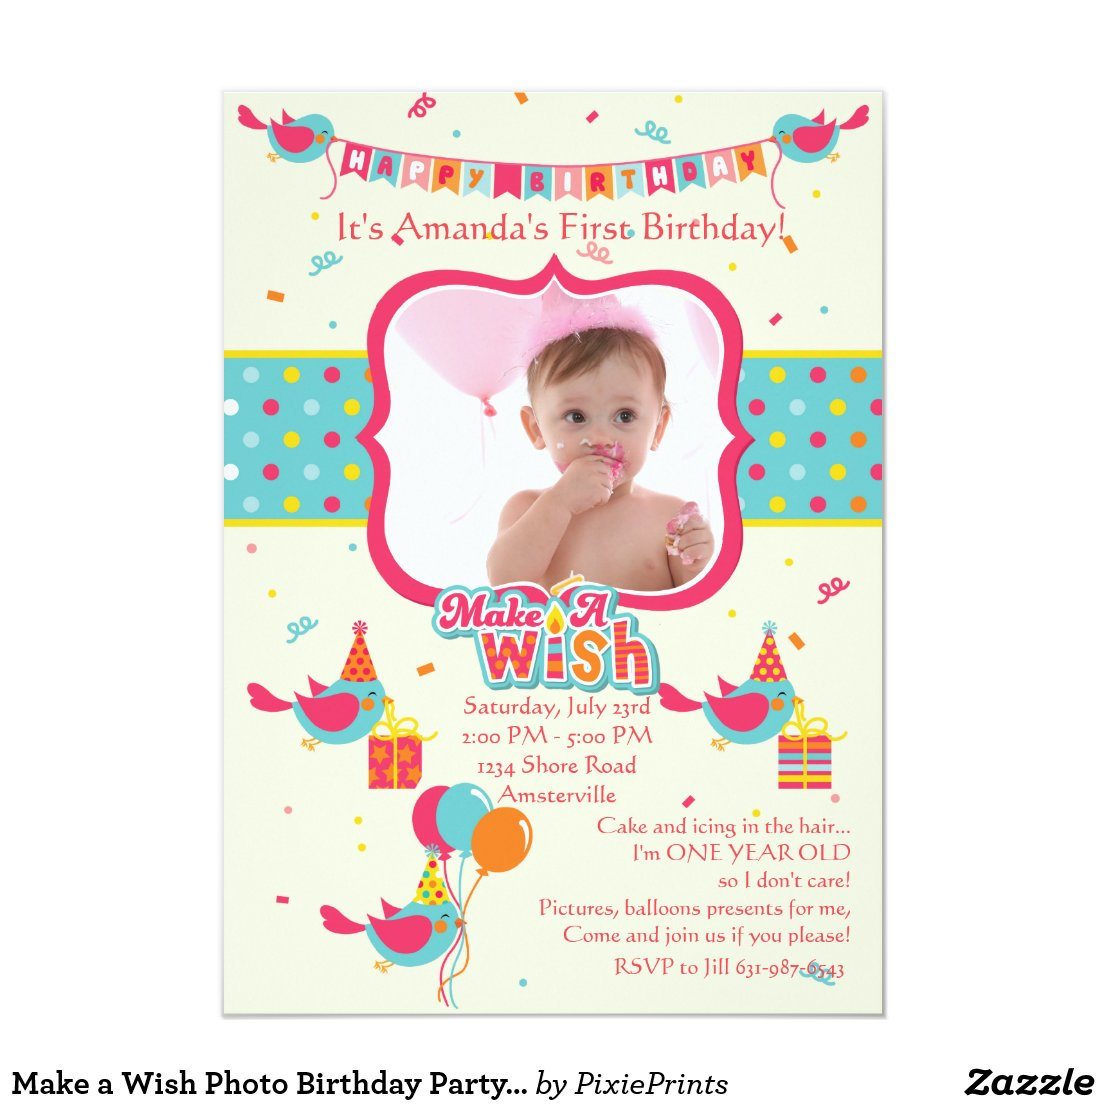 Make a Wish Photo Birthday Party Invitation